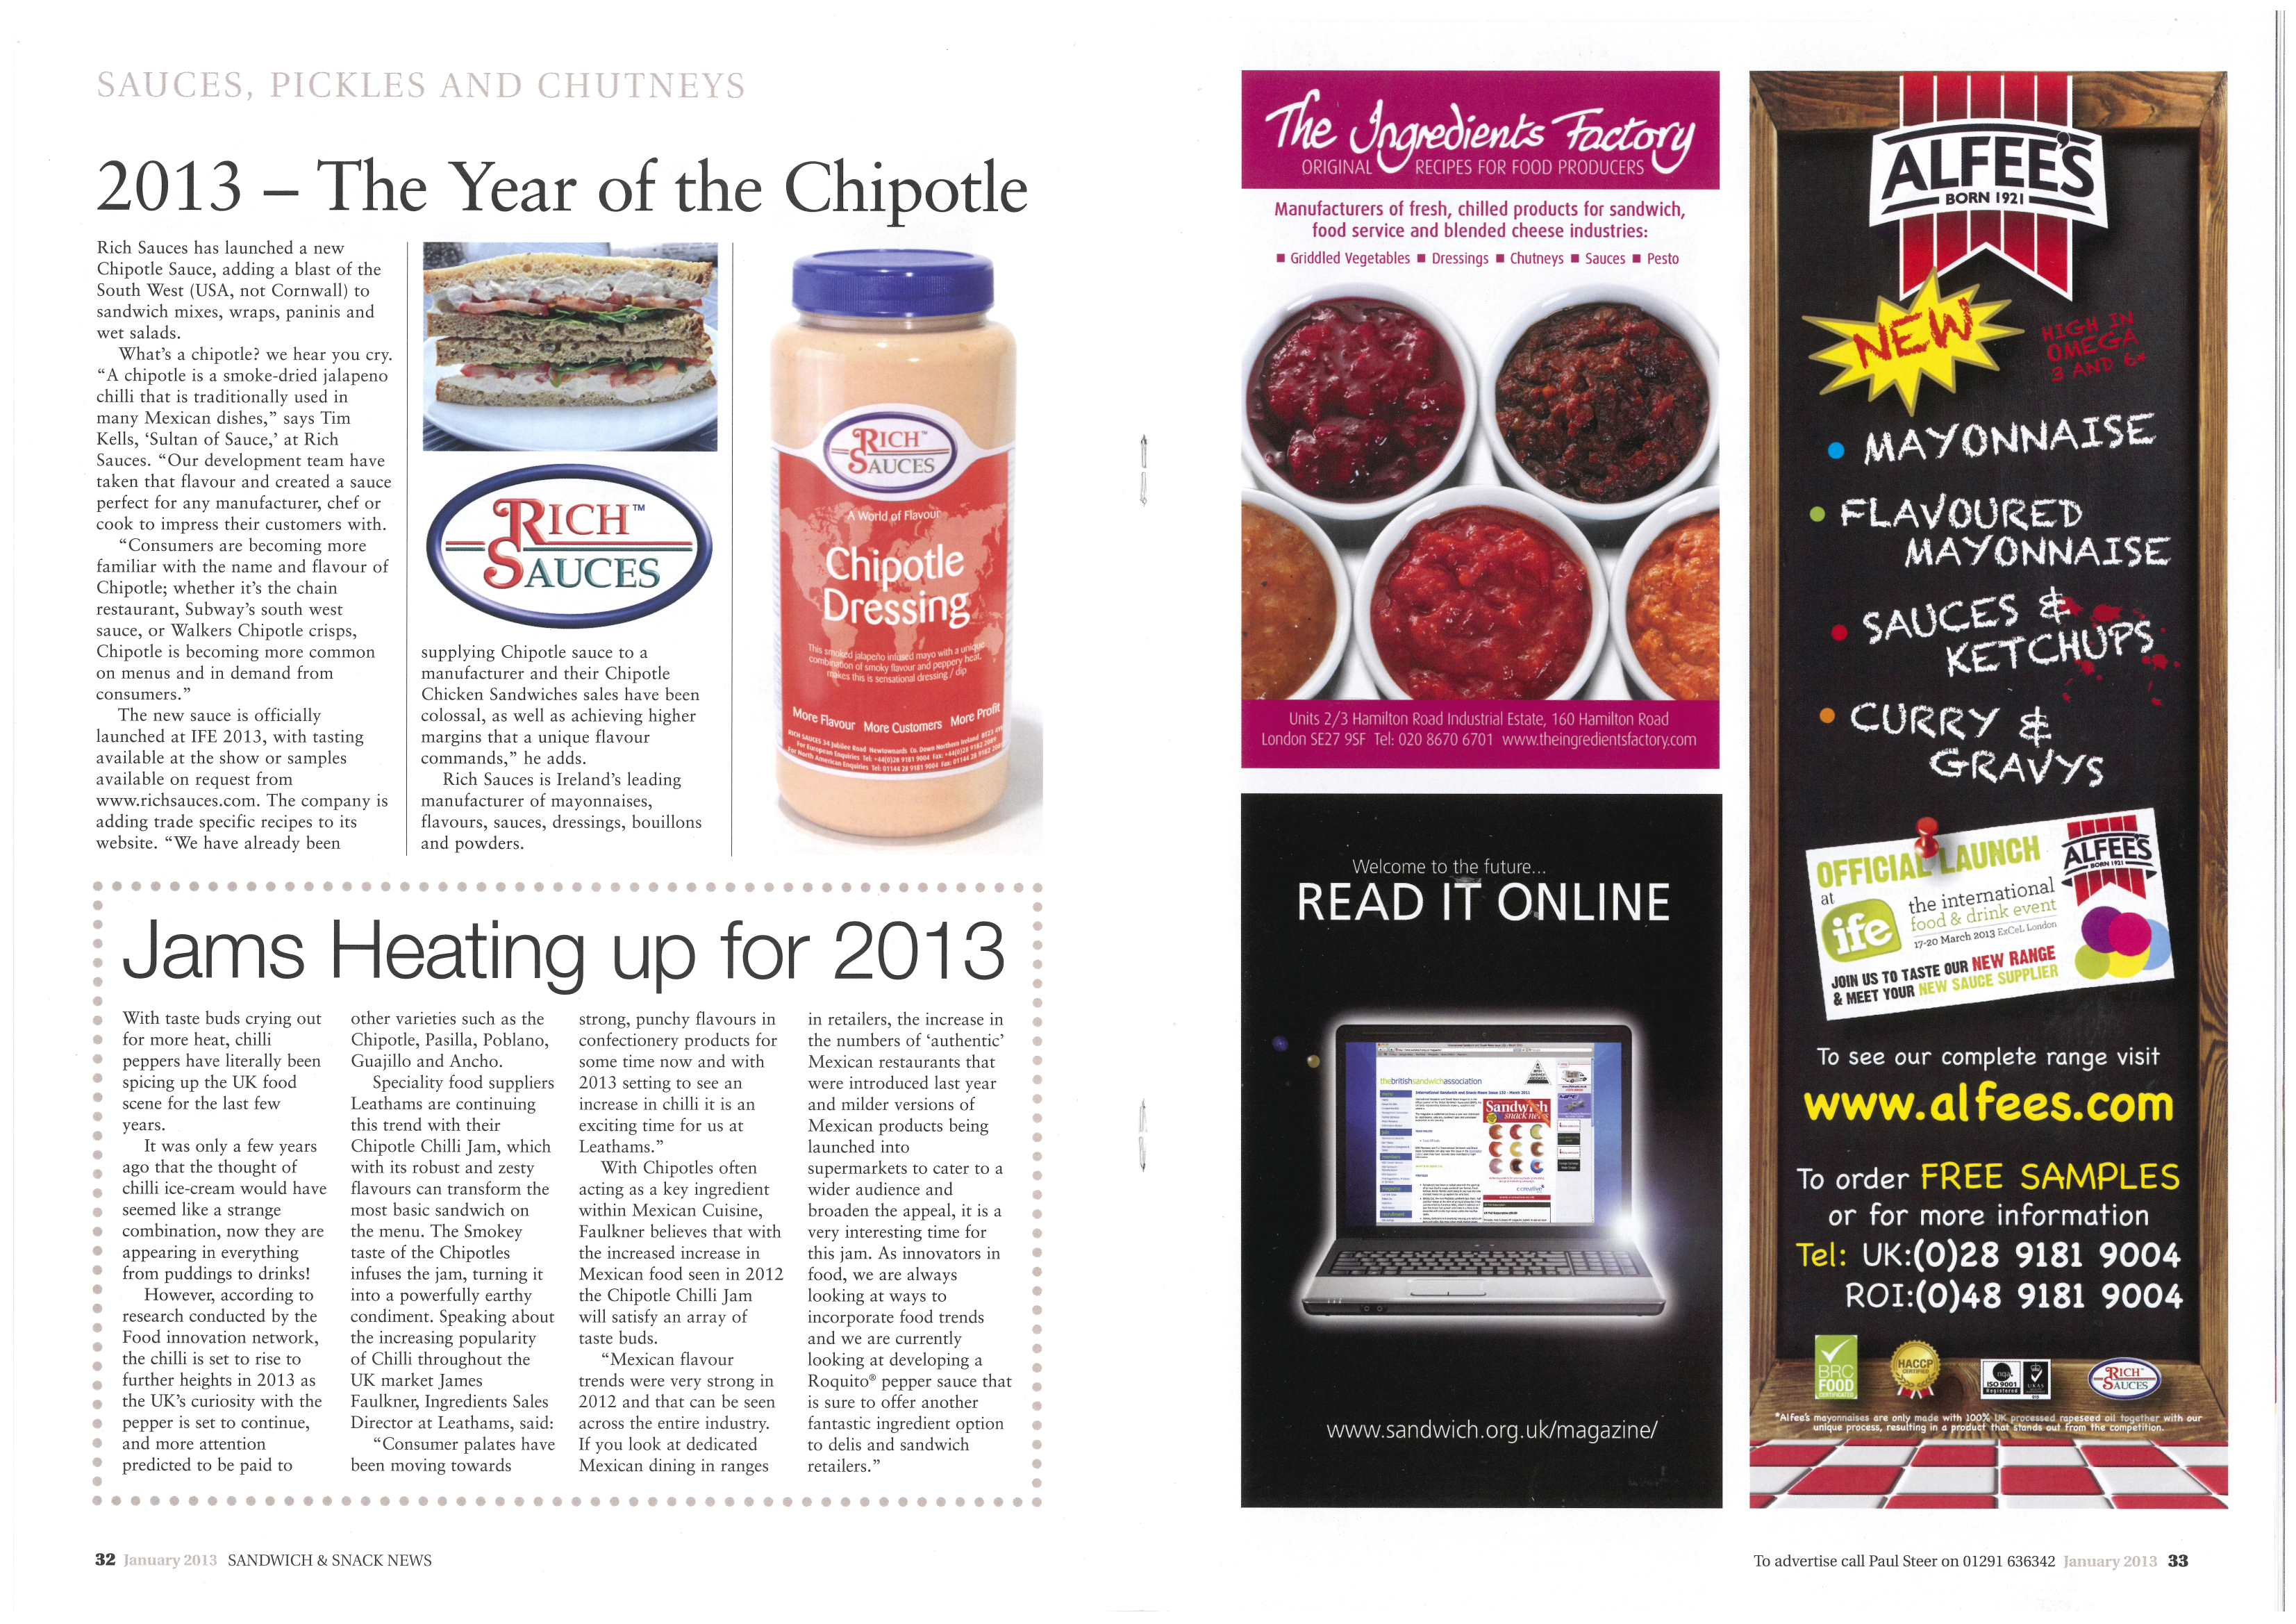 Sandwich and Snack news January 2013